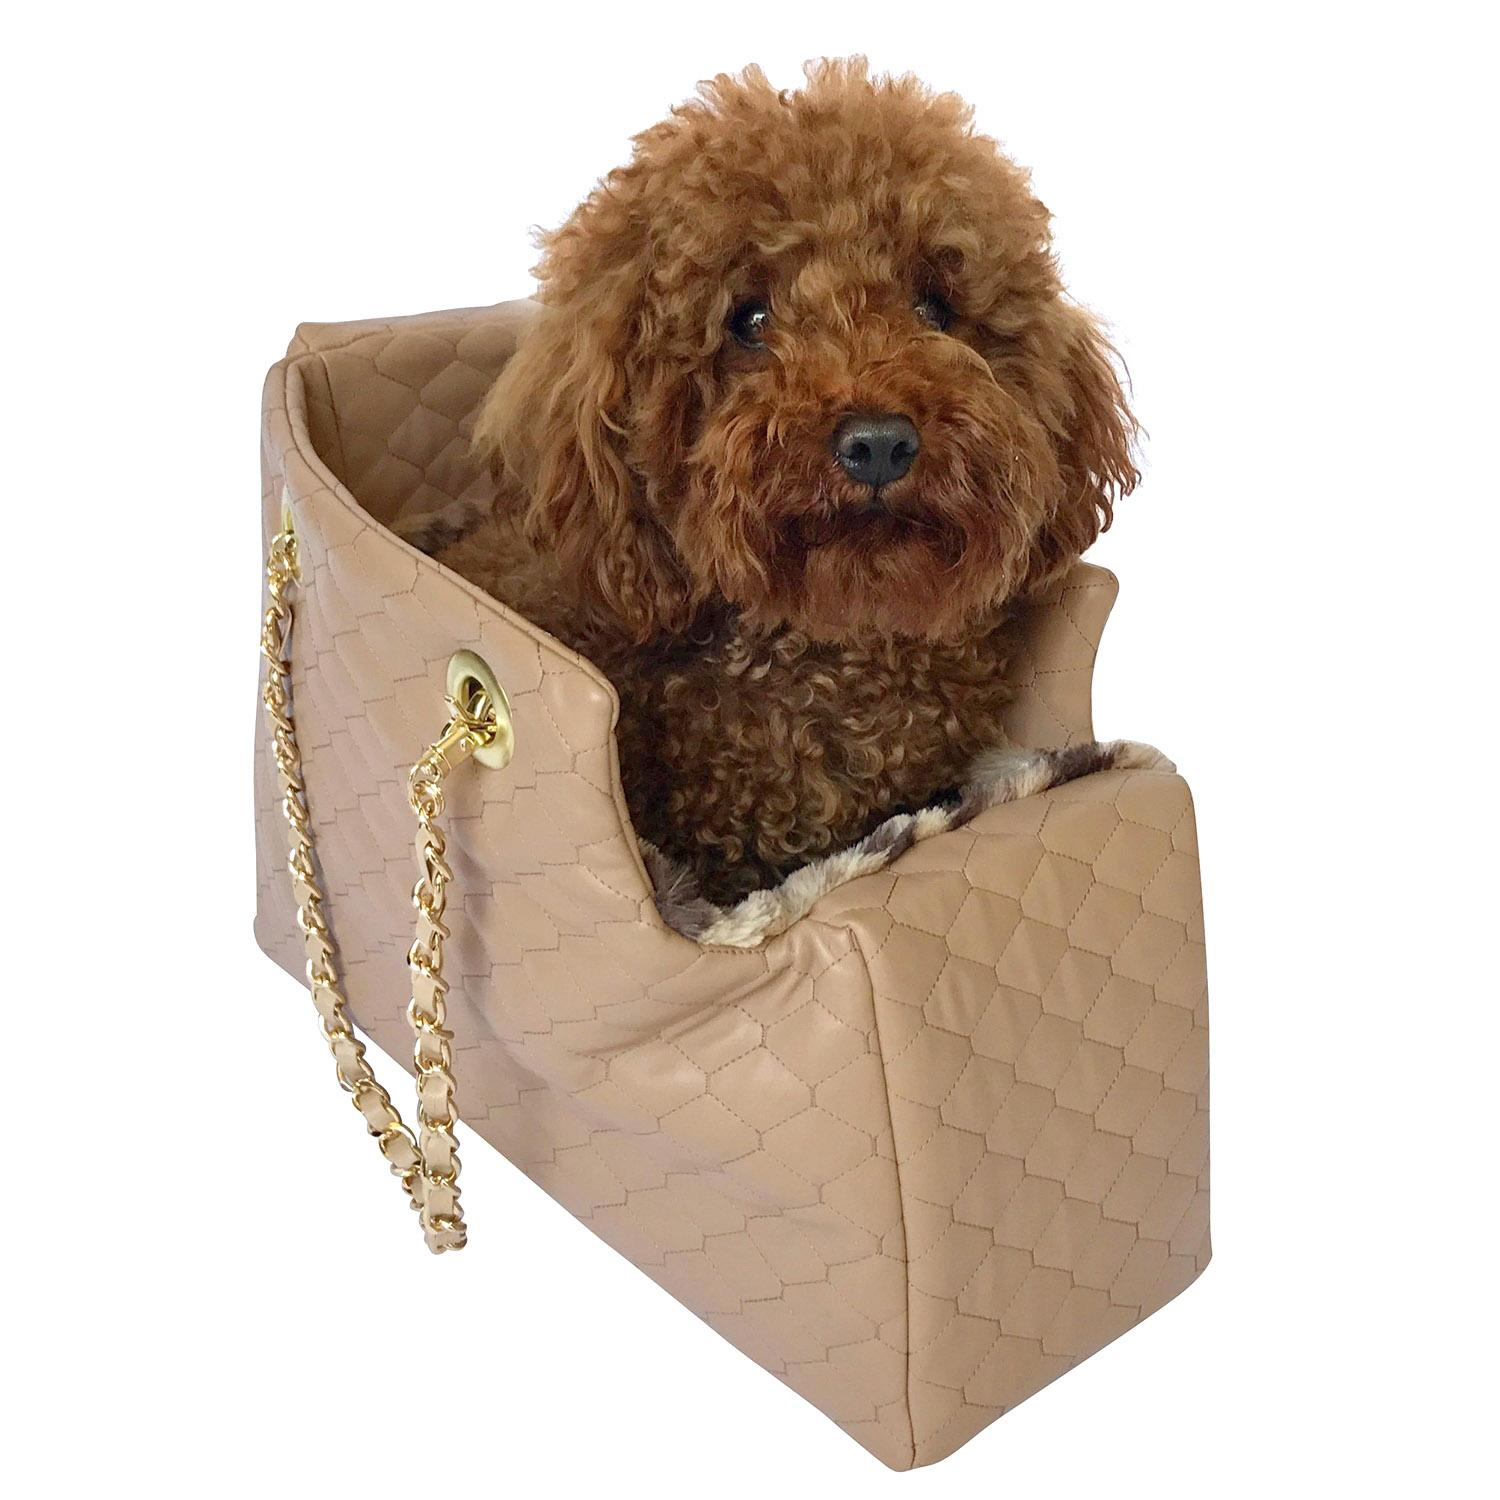 Kate Quilted Dog Carrier by The Dog Squad - Tan